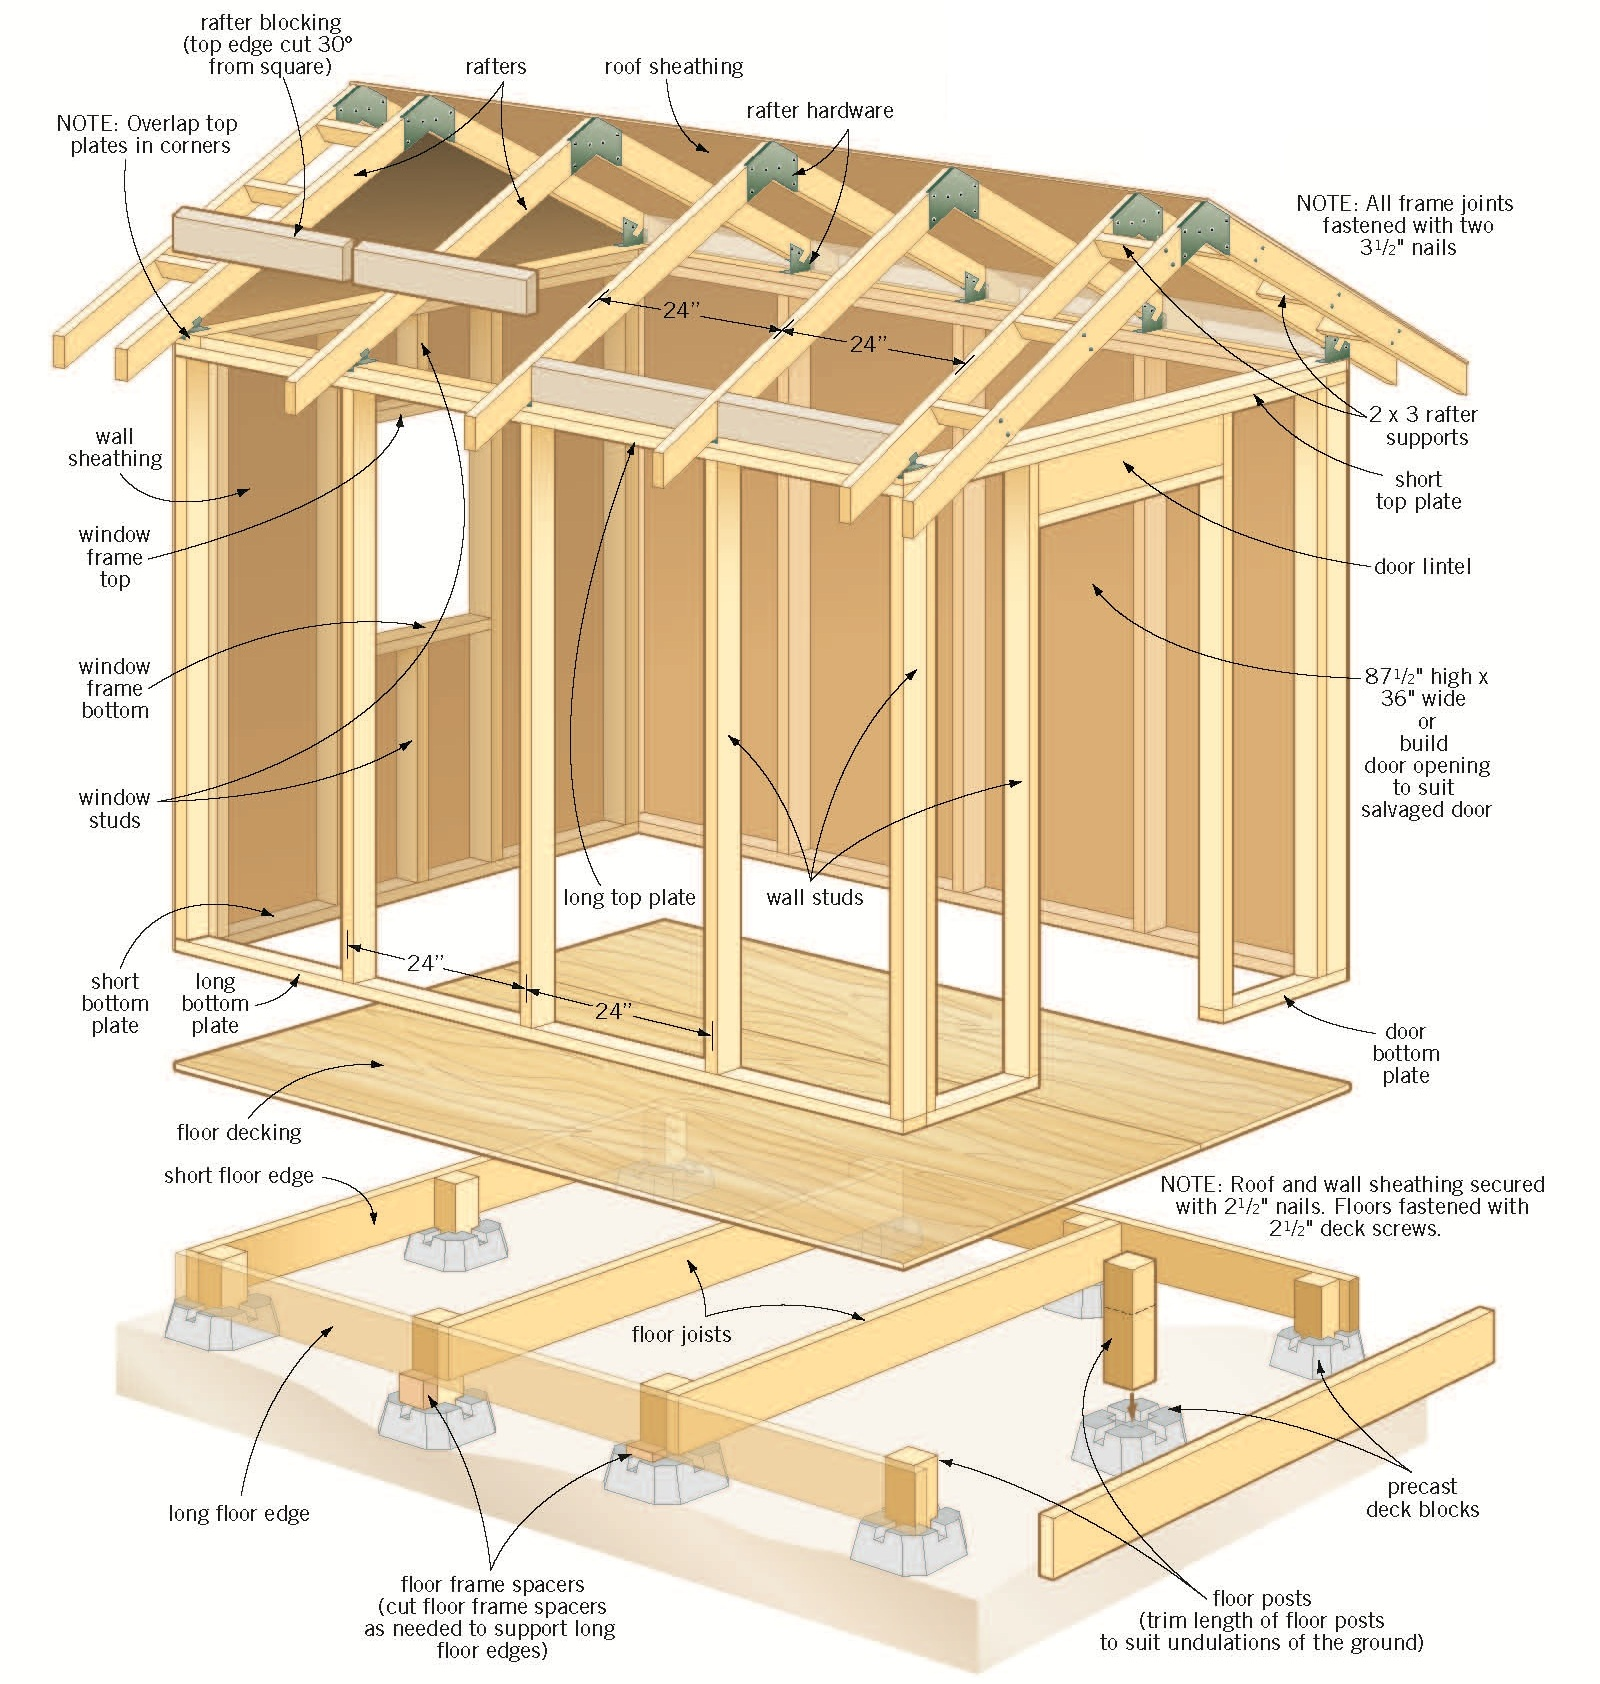 Scole free 10 x12 shed plans 6x8 rug for 10 x 8 shed floor plans